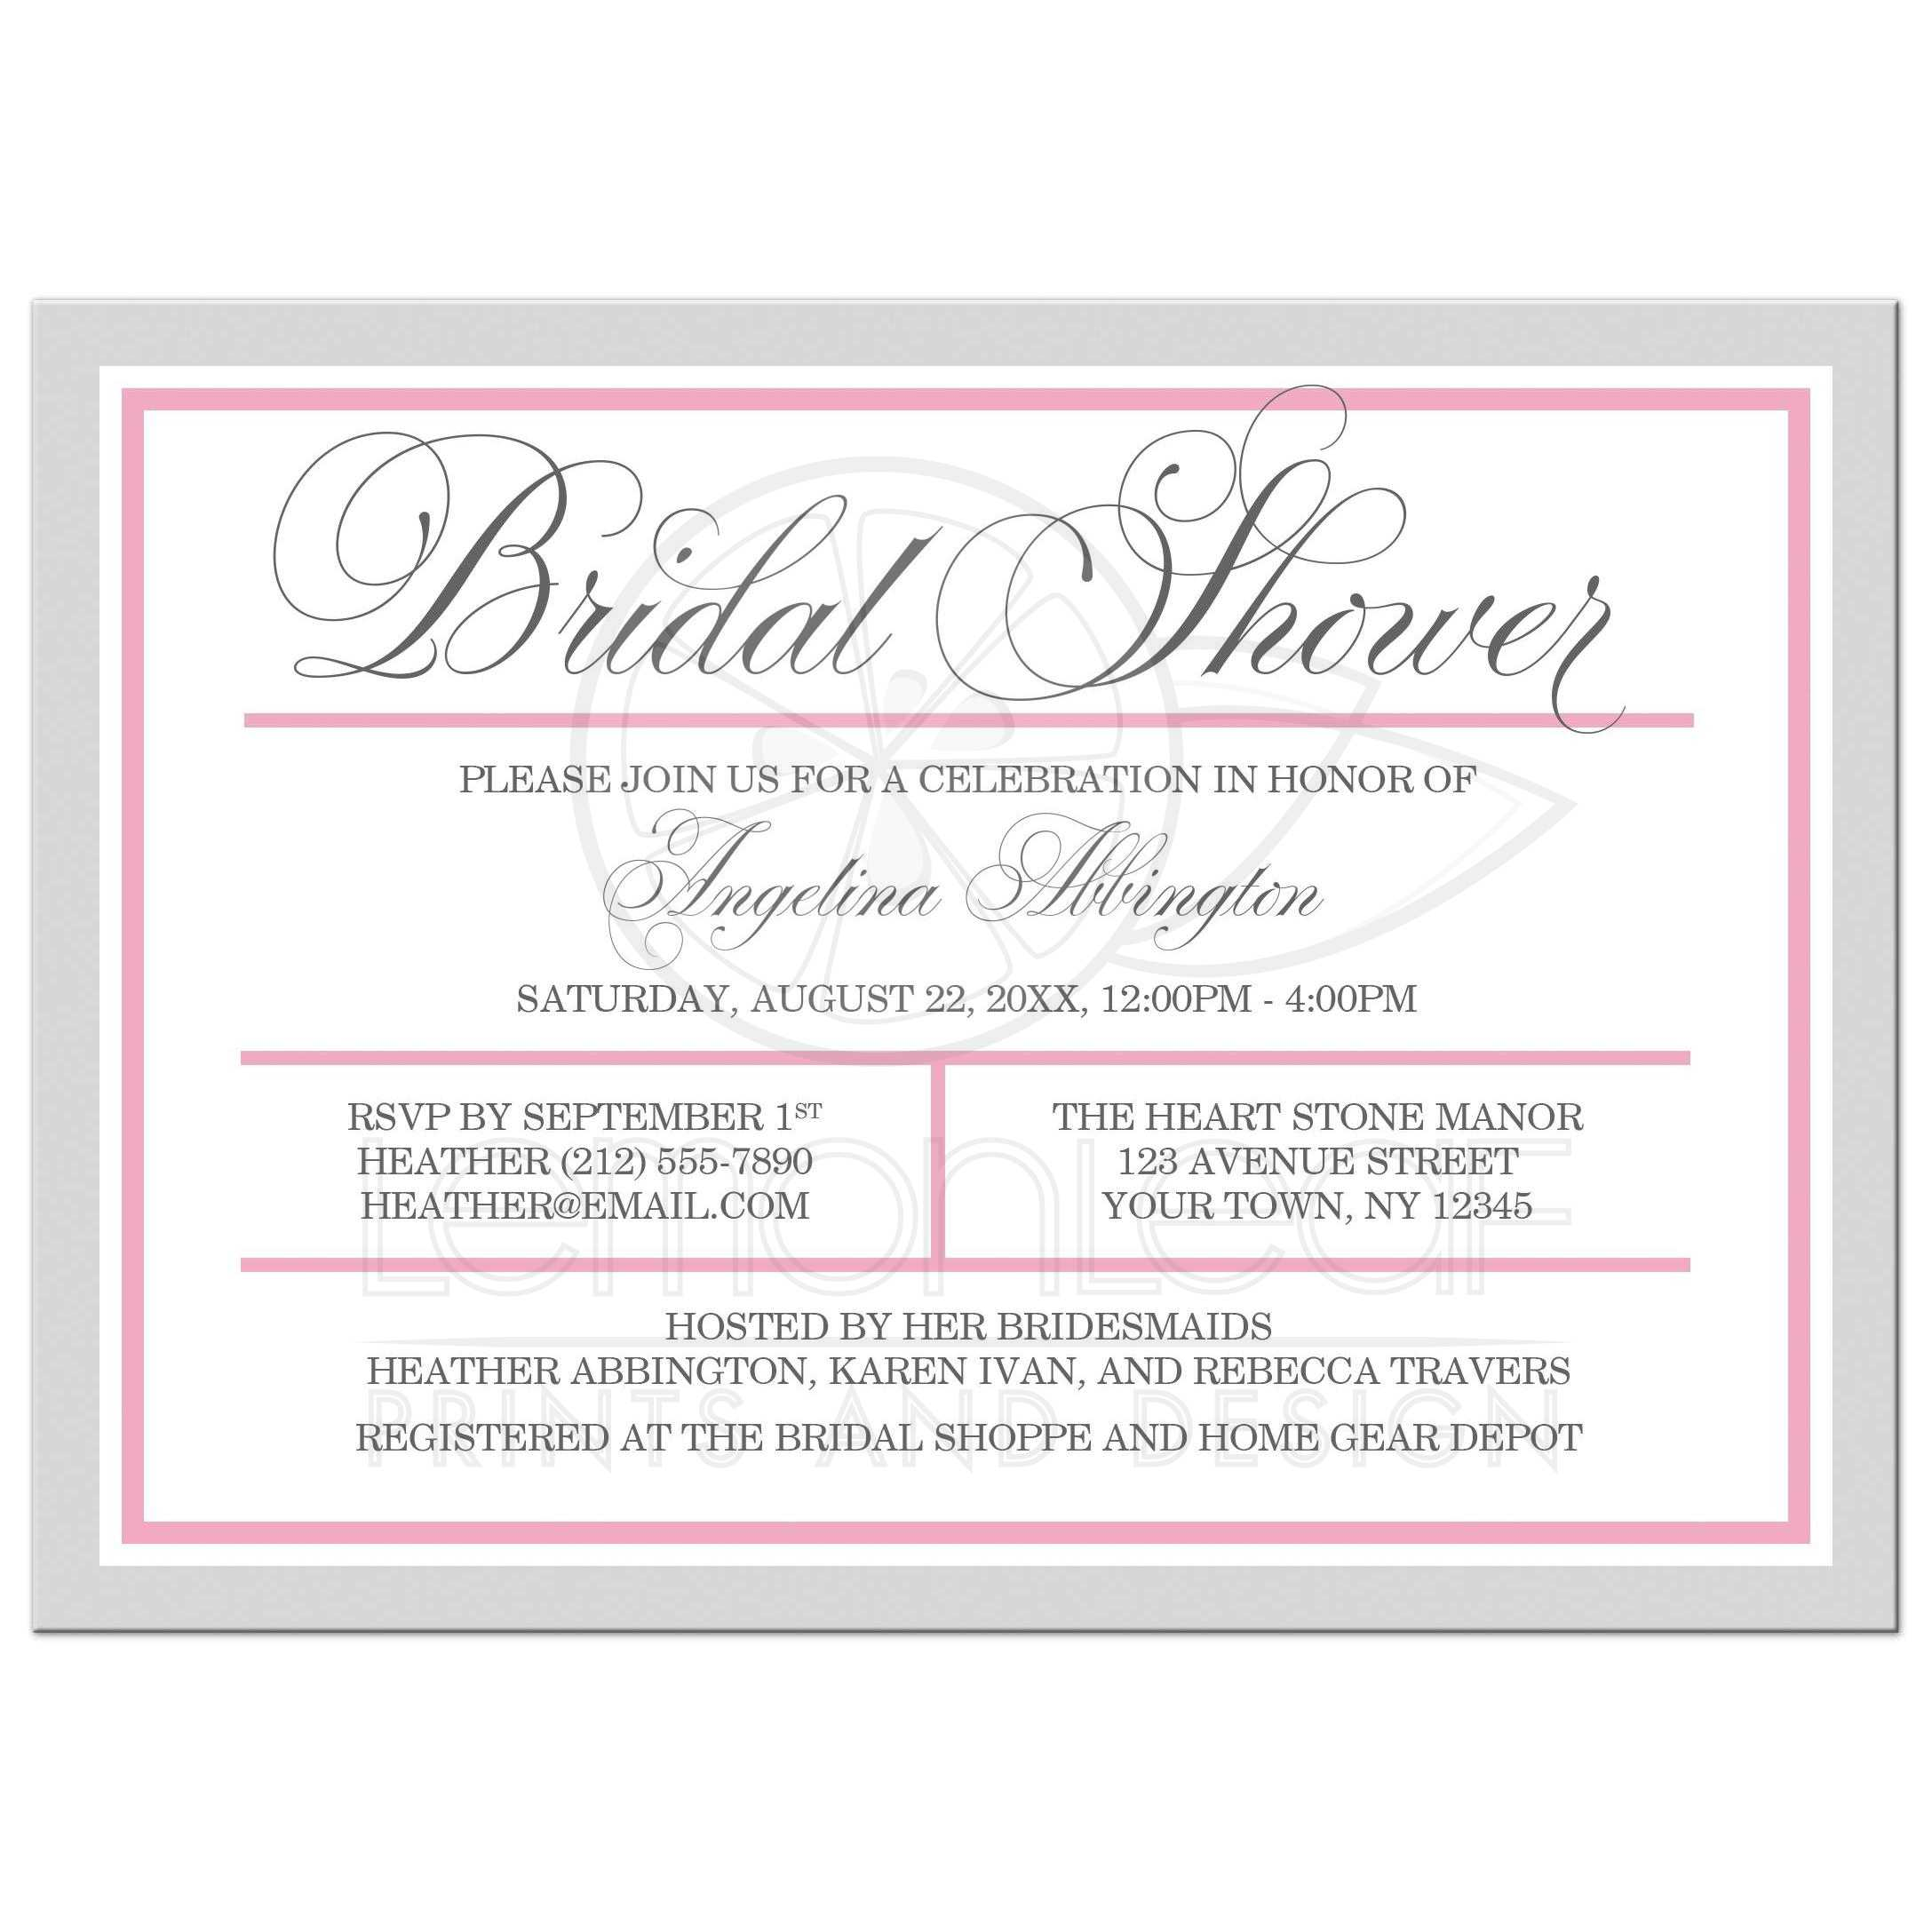 Bridal Shower Invitations - Modern Pink and Gray